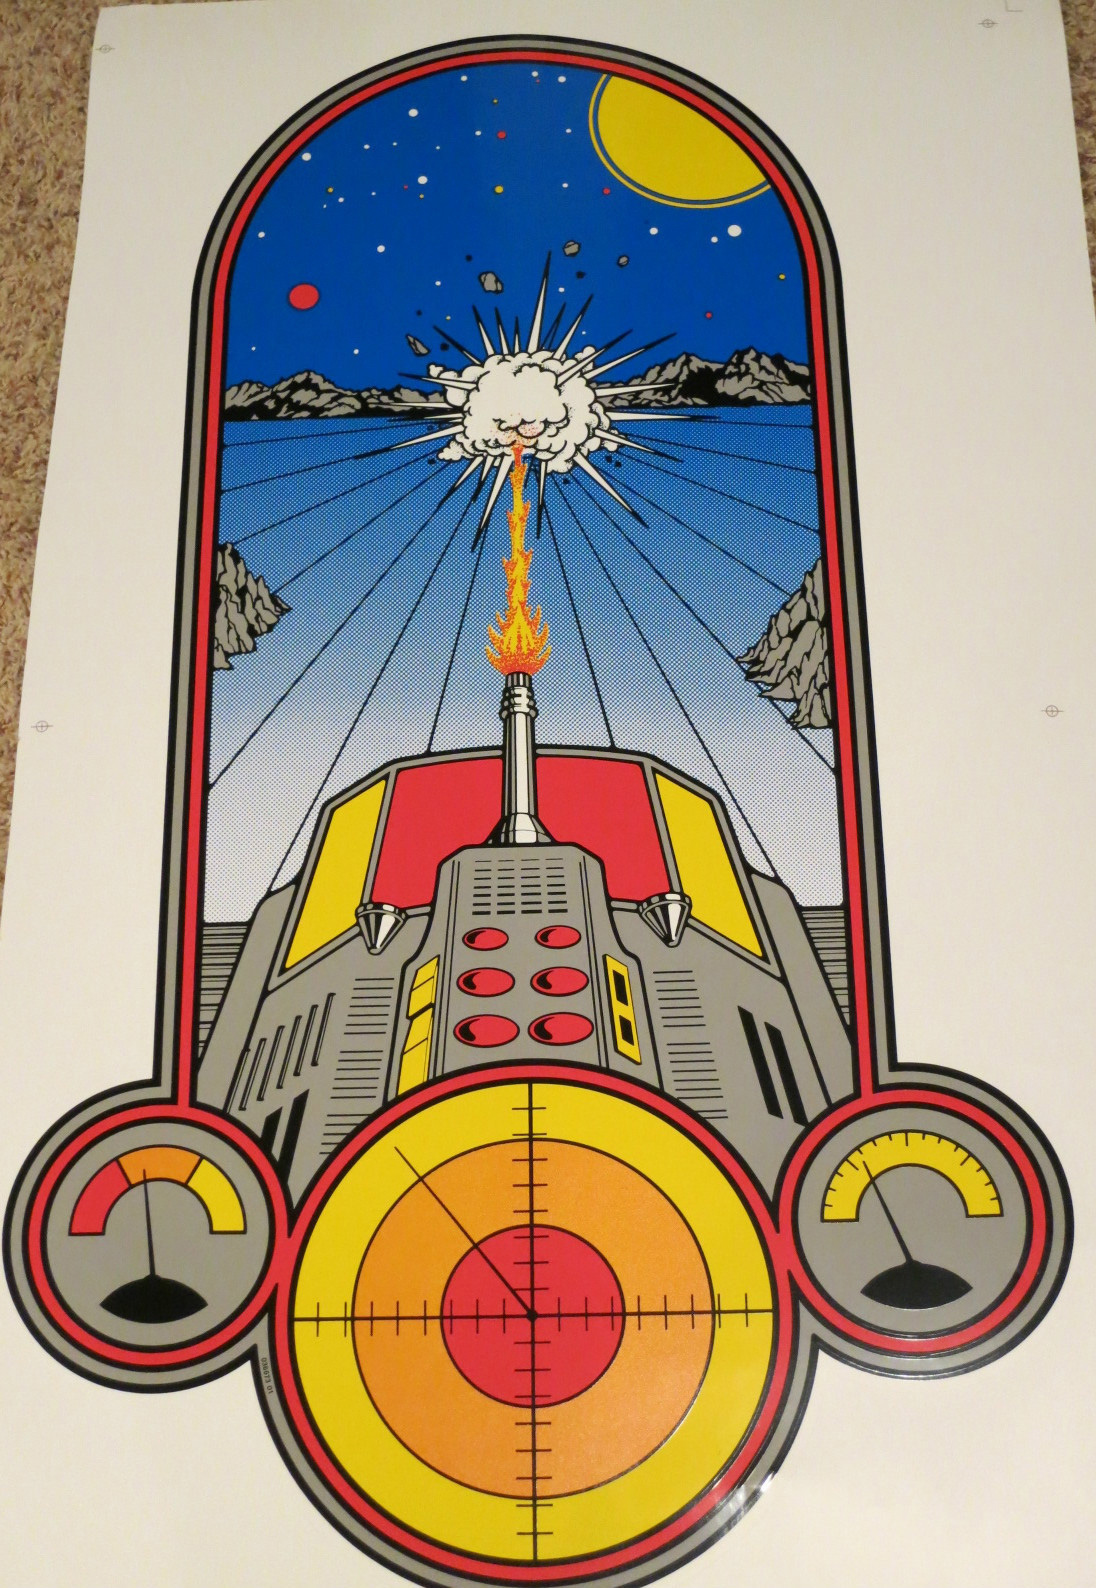 Battlezone Mini Side Art Phoenix Arcade 1 Source For